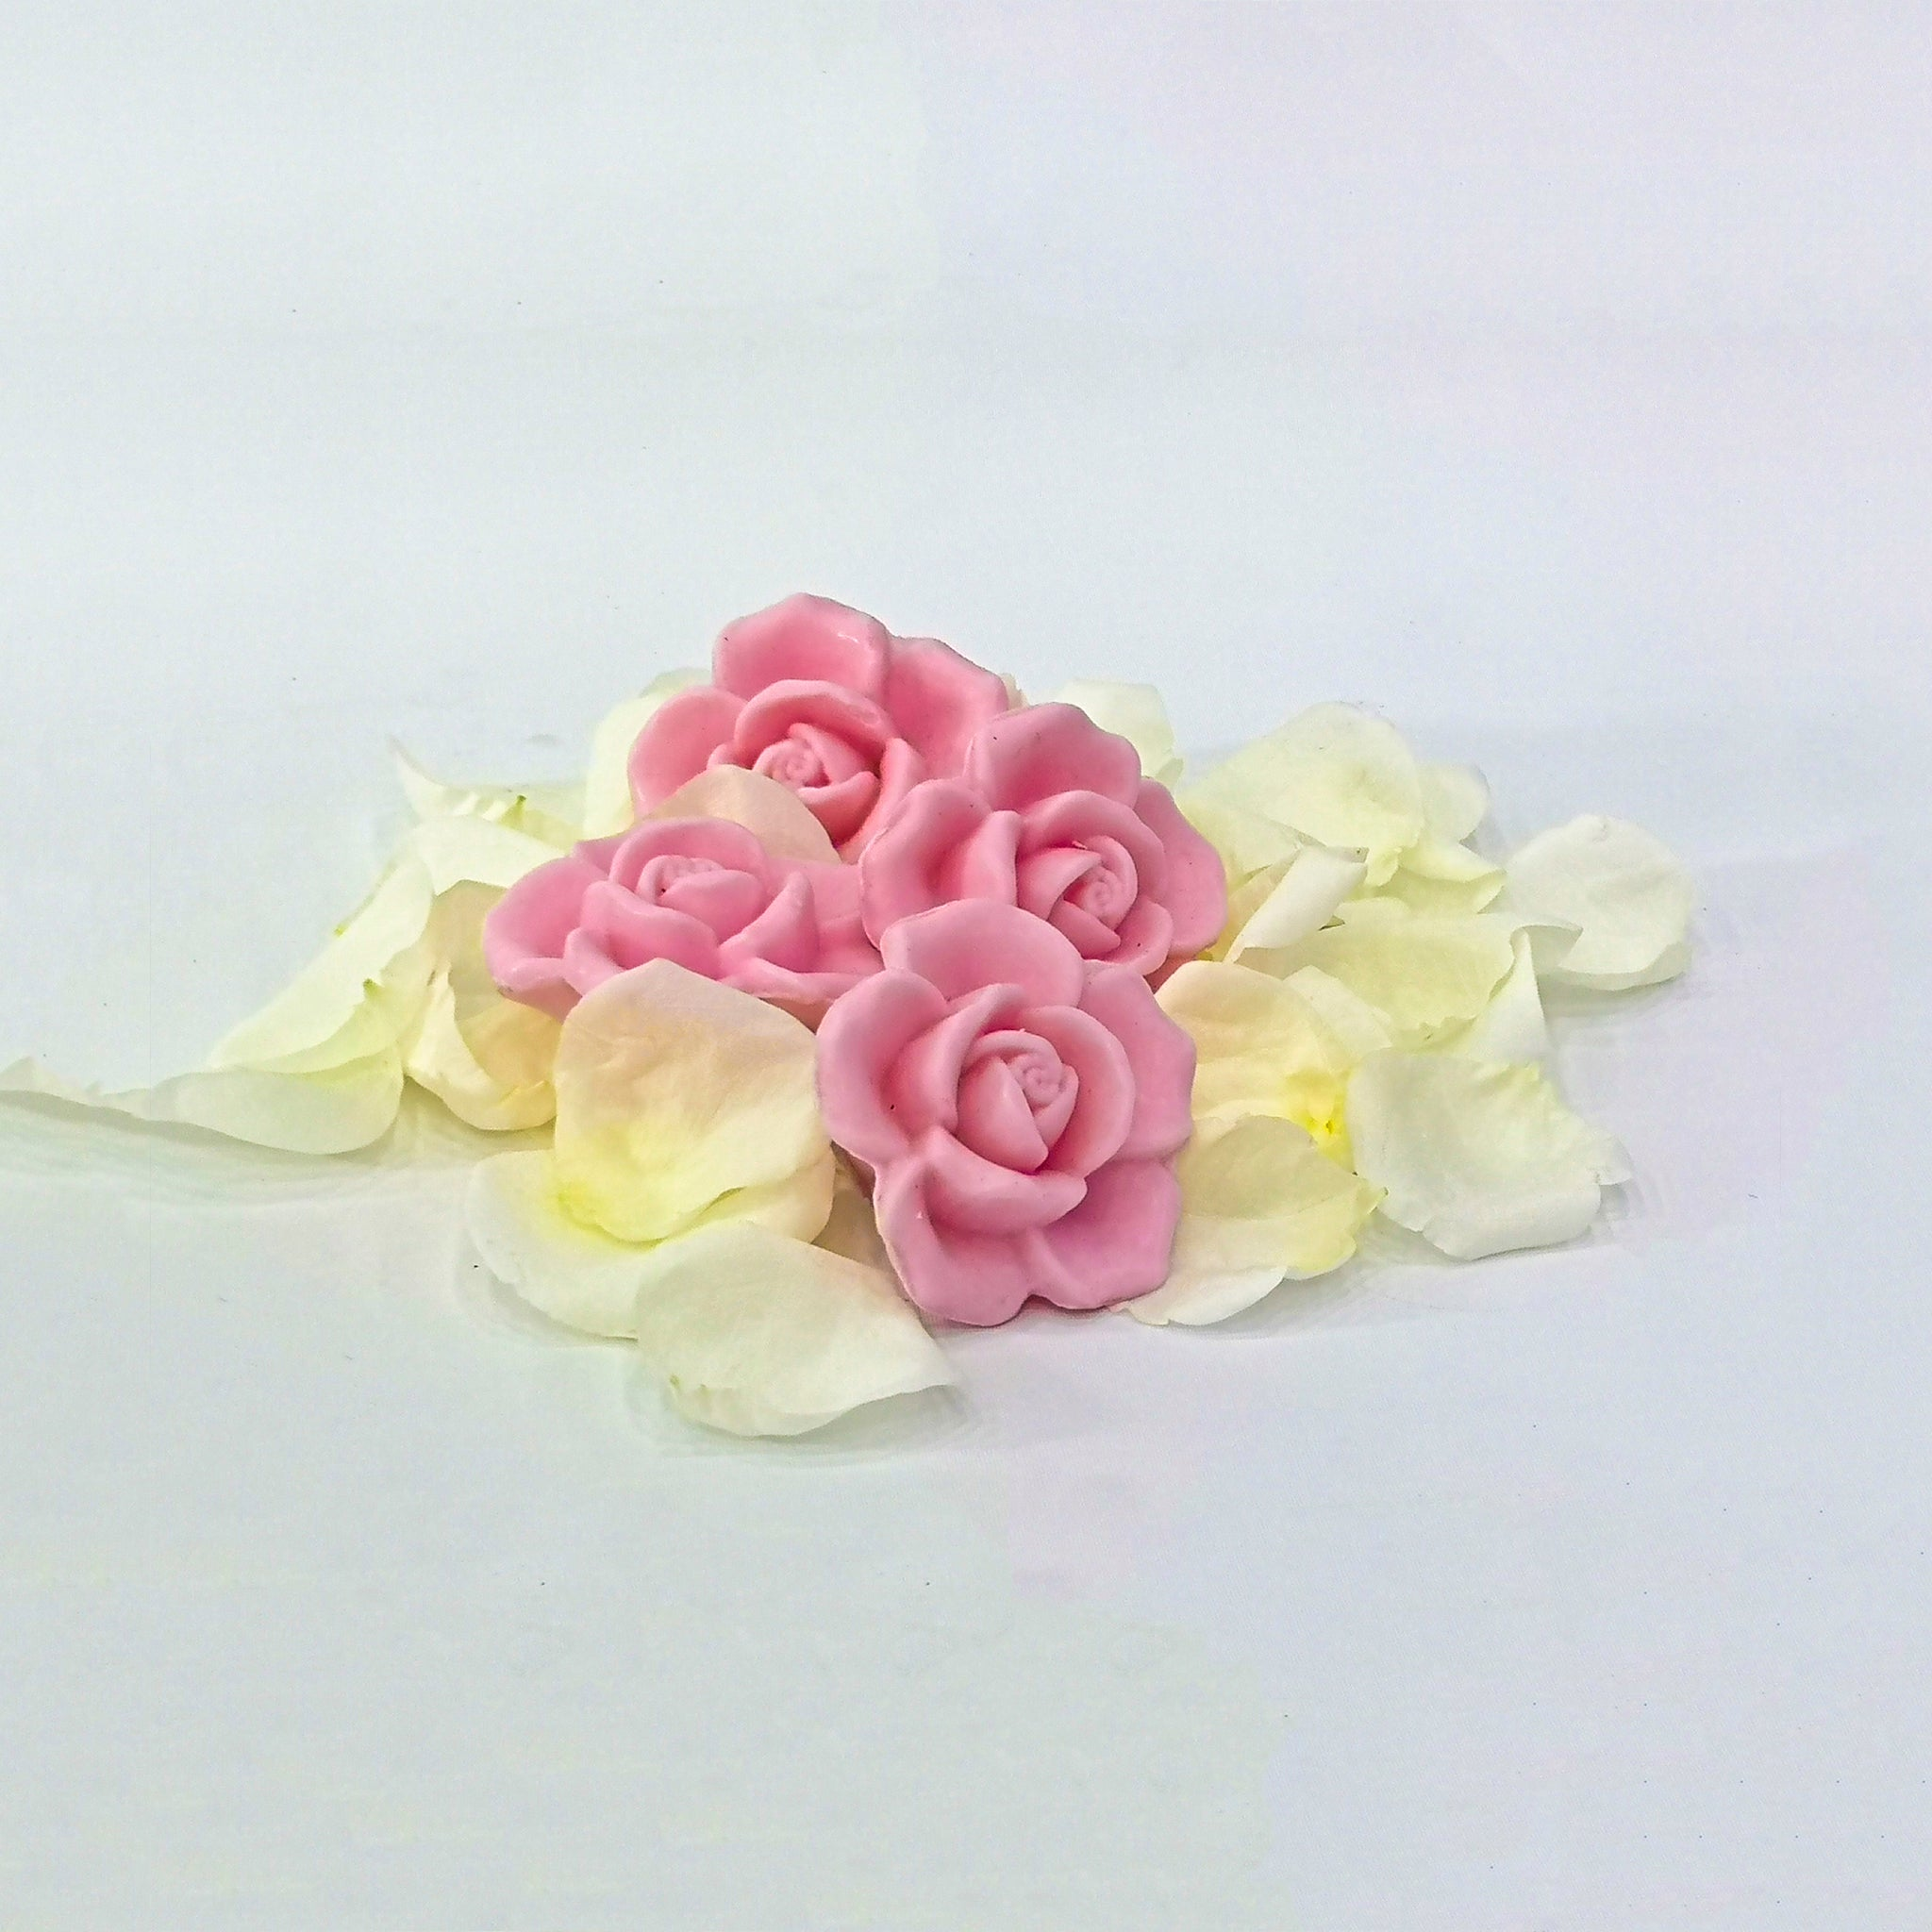 Rose Shape Soap